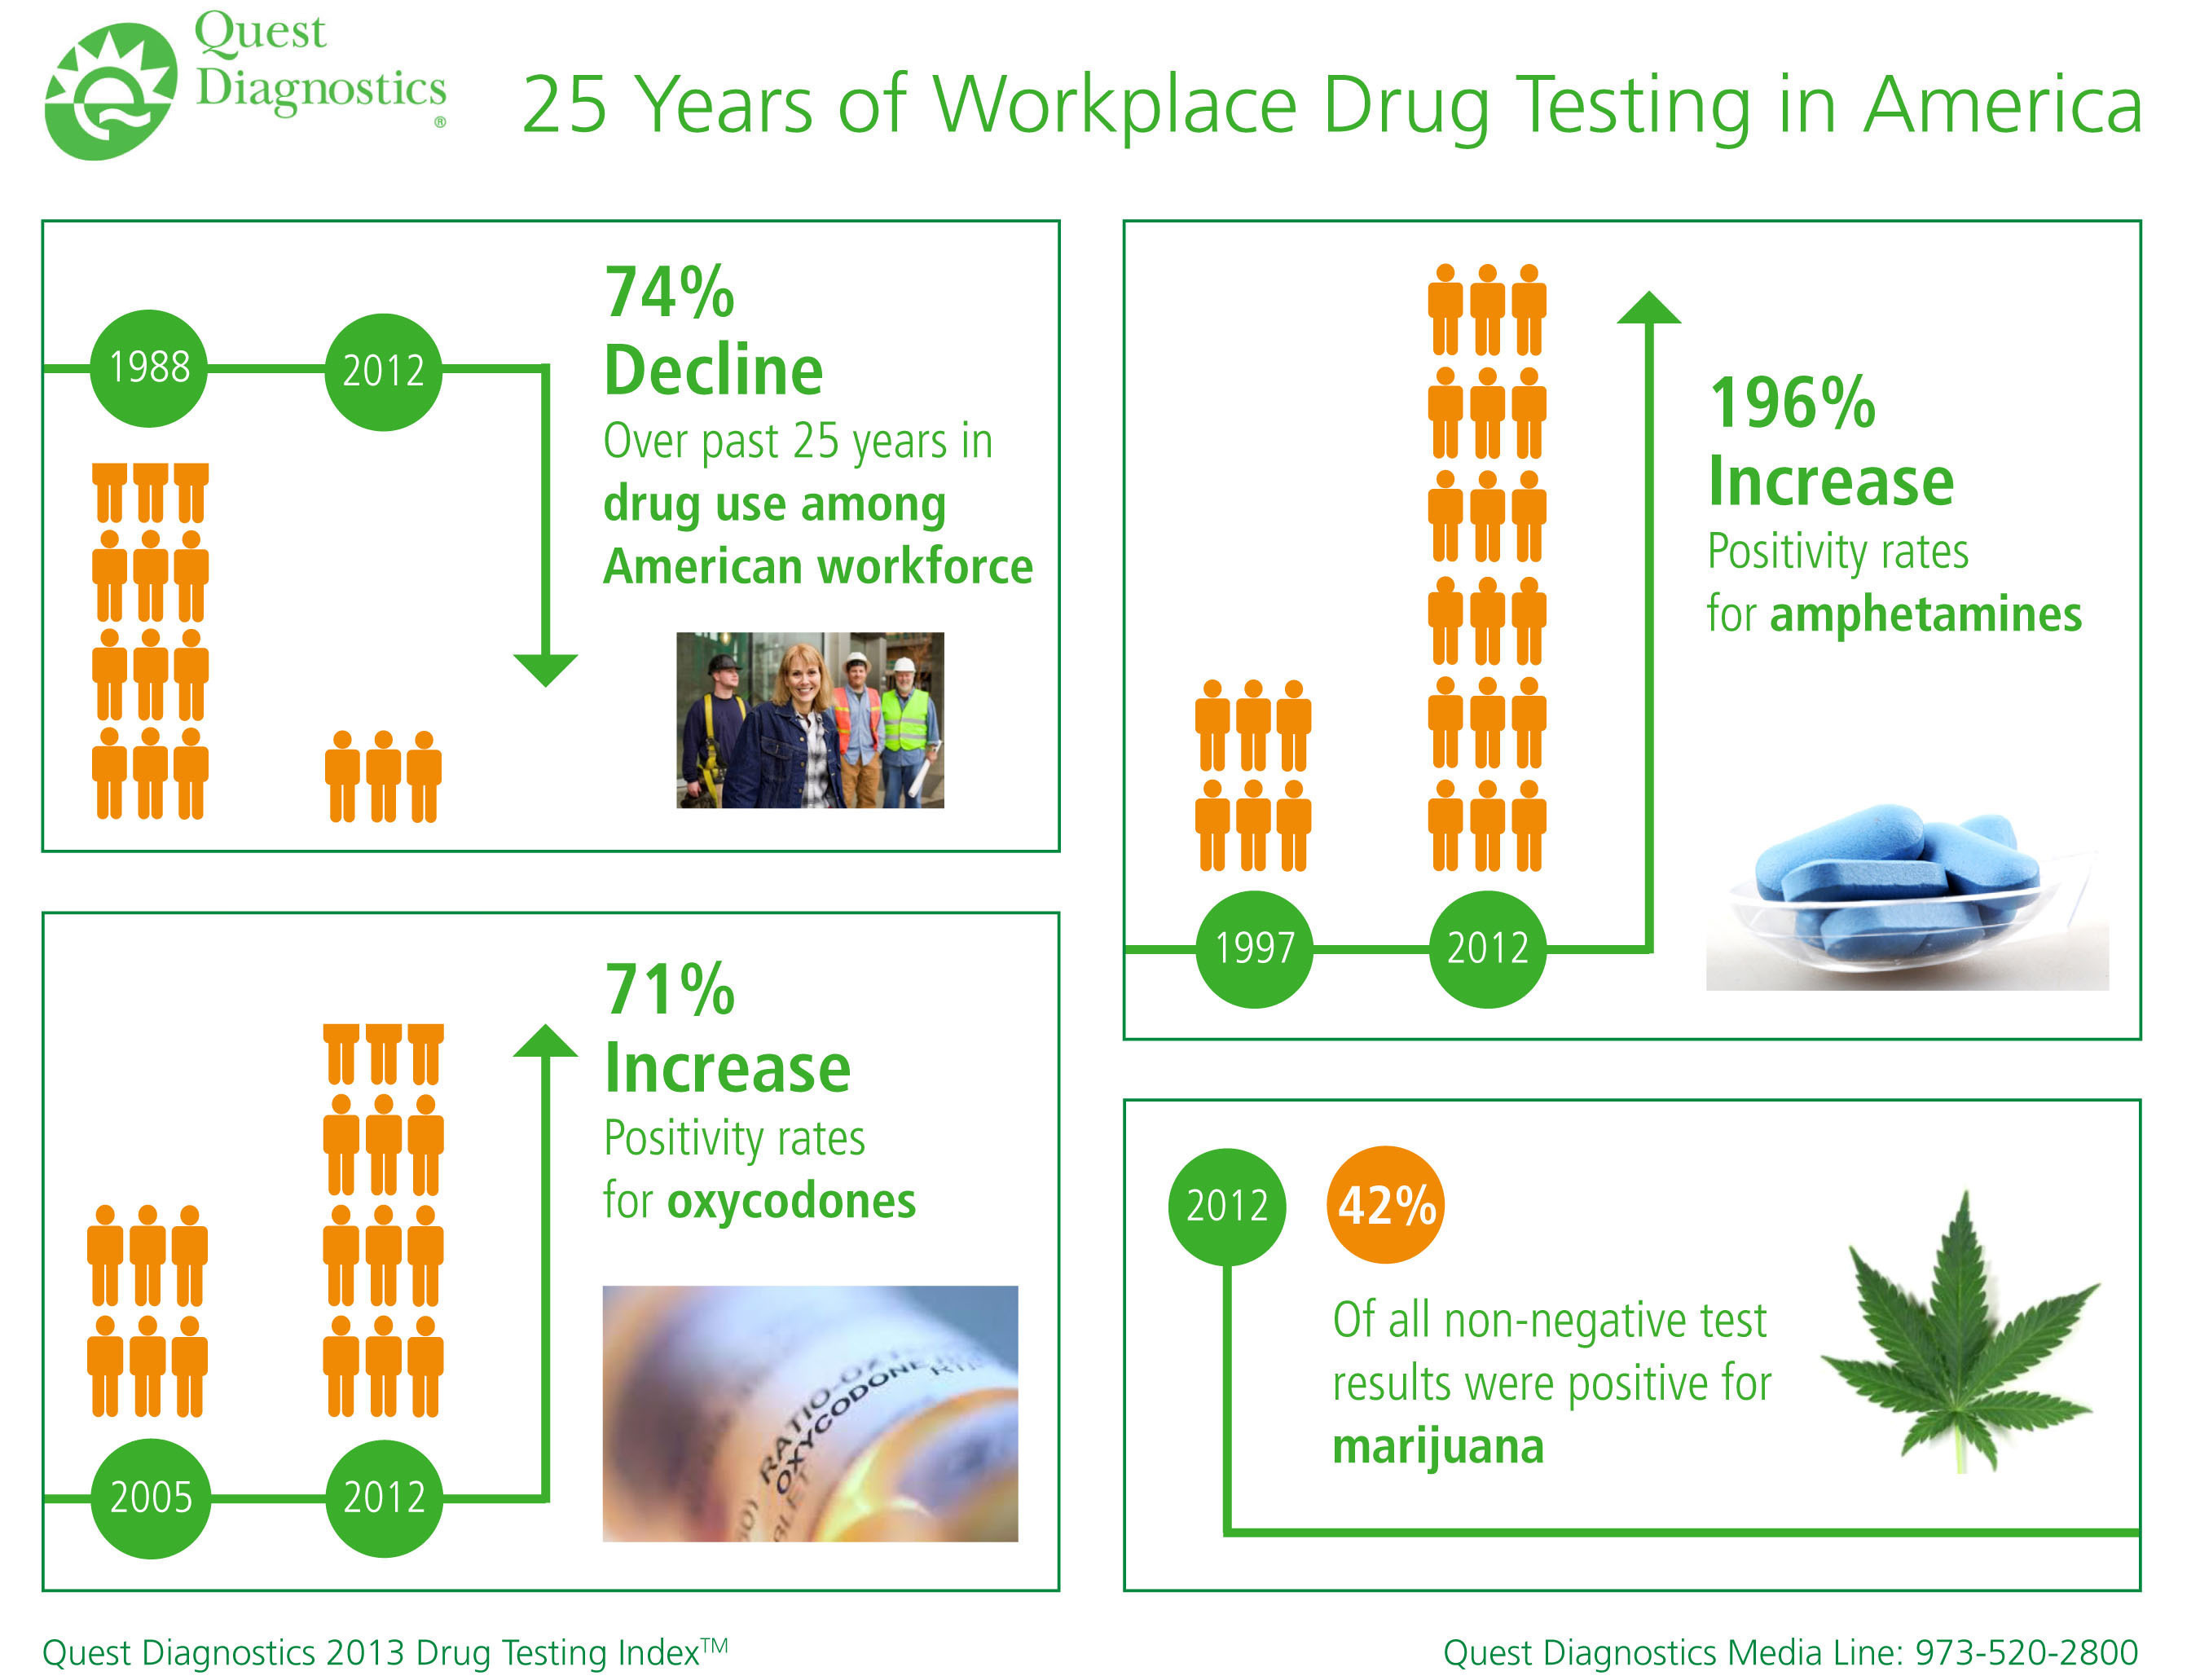 Drug Use Among American Workers Declined 74% Over Past 25 Years Finds Analysis by Quest Diagnostics. ...